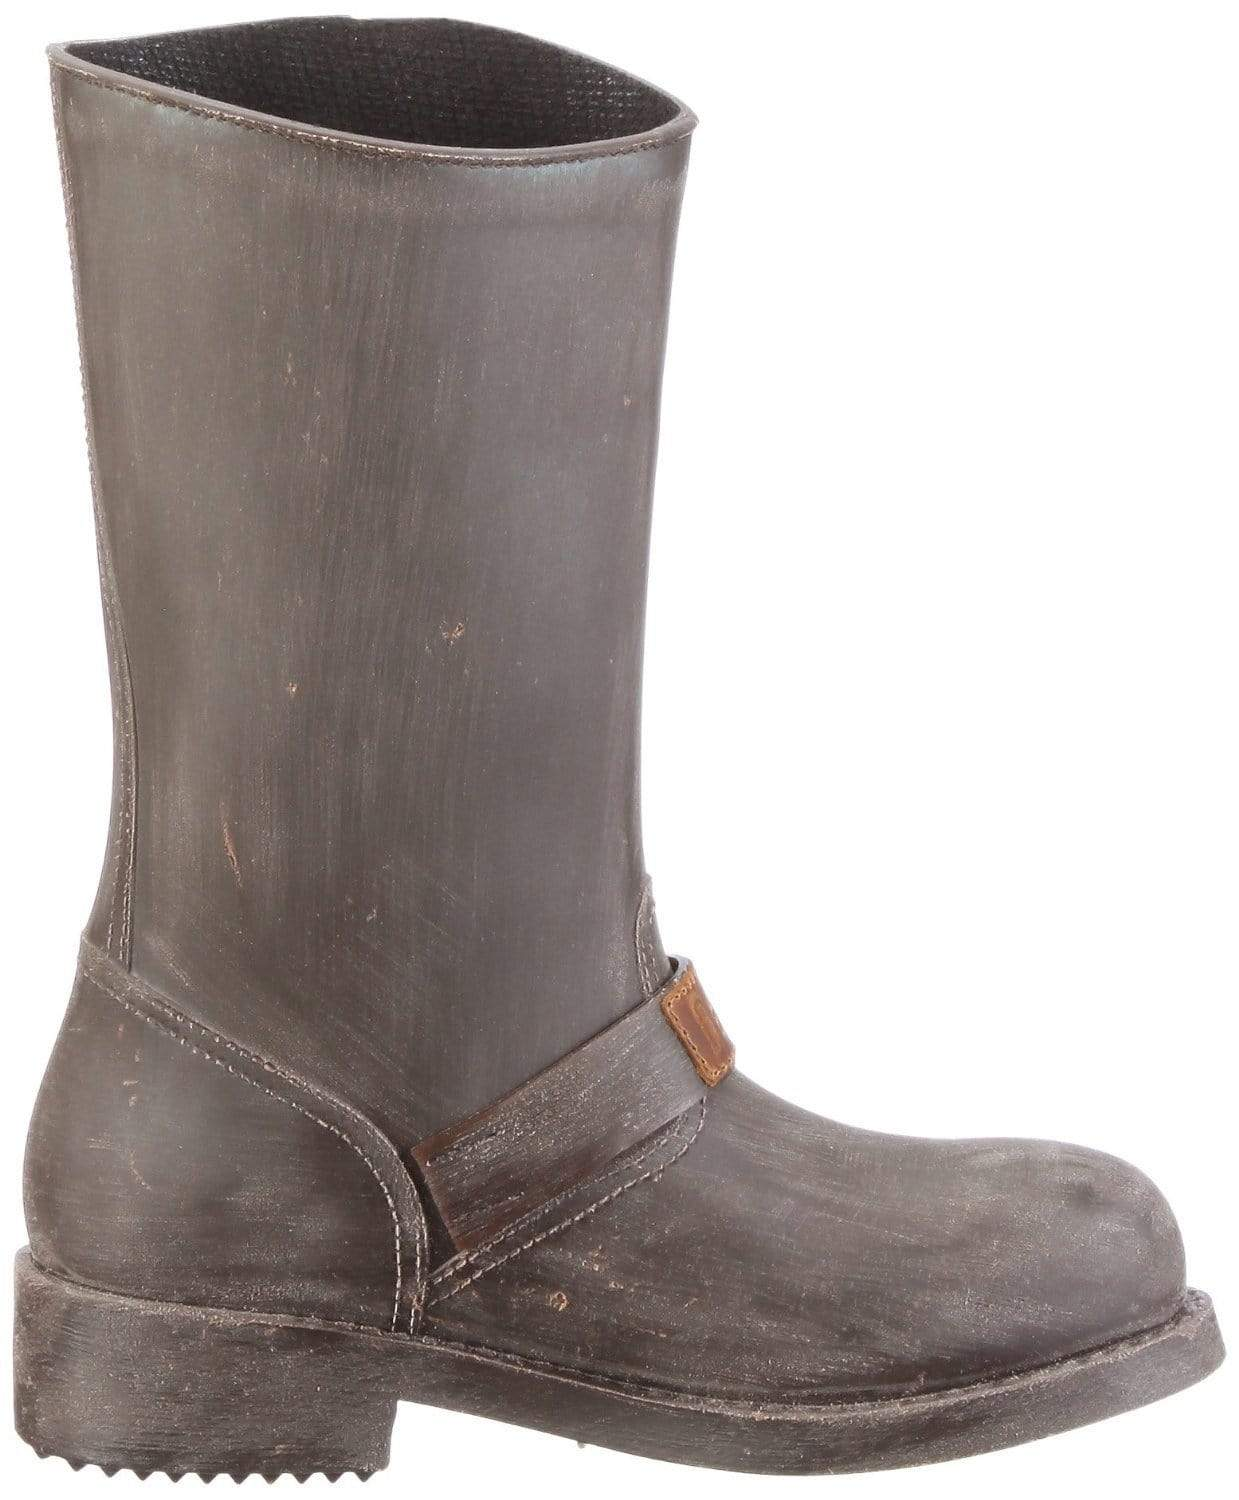 NAT 2 shoe Rugged Prime Biker Rain Boots. Rubber and Recycled Leather. sustainable fashion ethical fashion